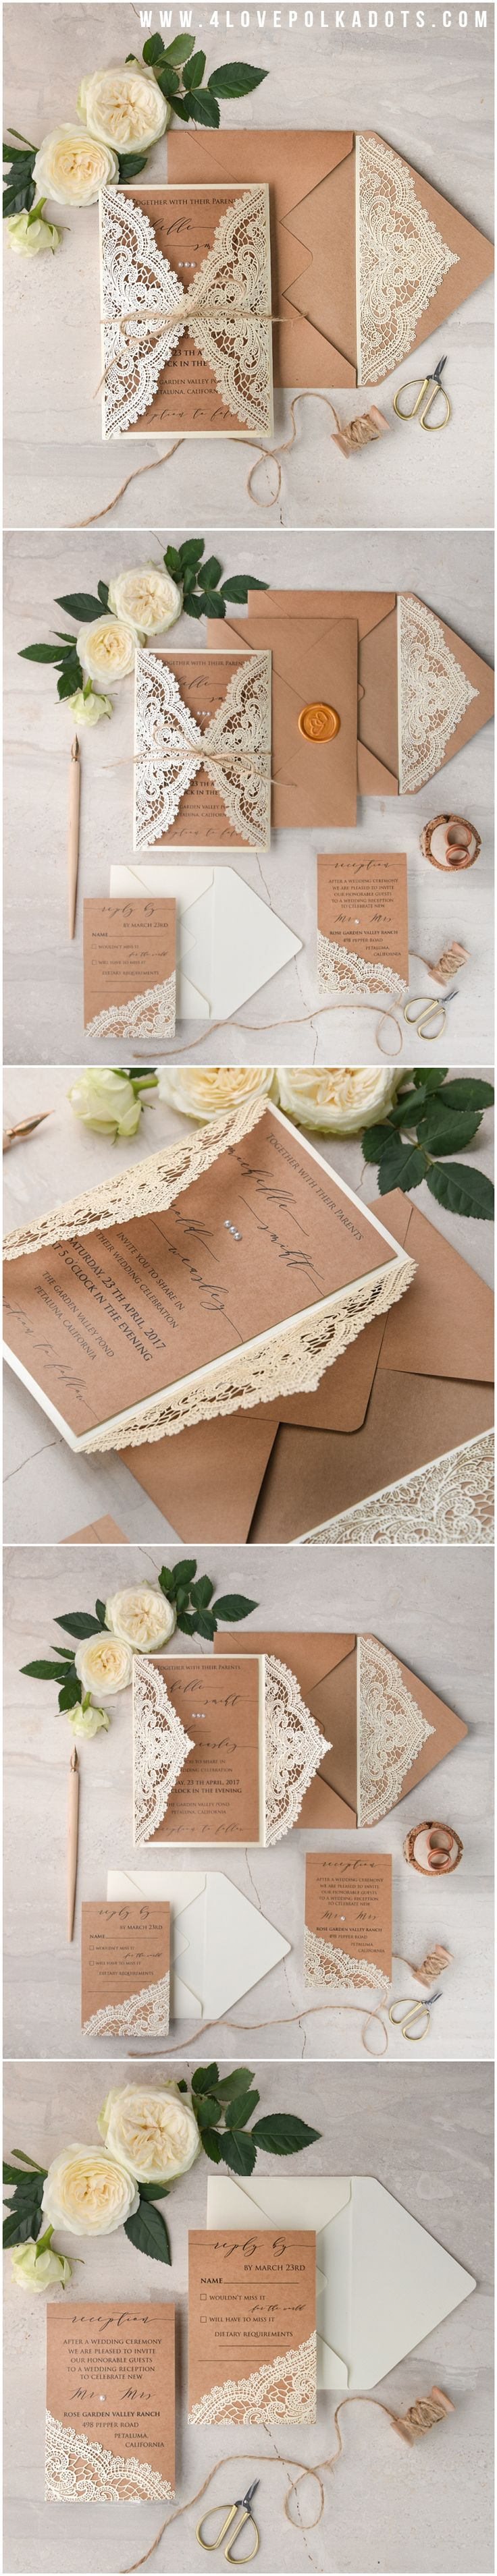 Laser cut Romantic Lace Wedding Invitations - calligraphy printing, wax stamping #romantic #elegant #weddingideas #eco #rustic #beautiful #lace